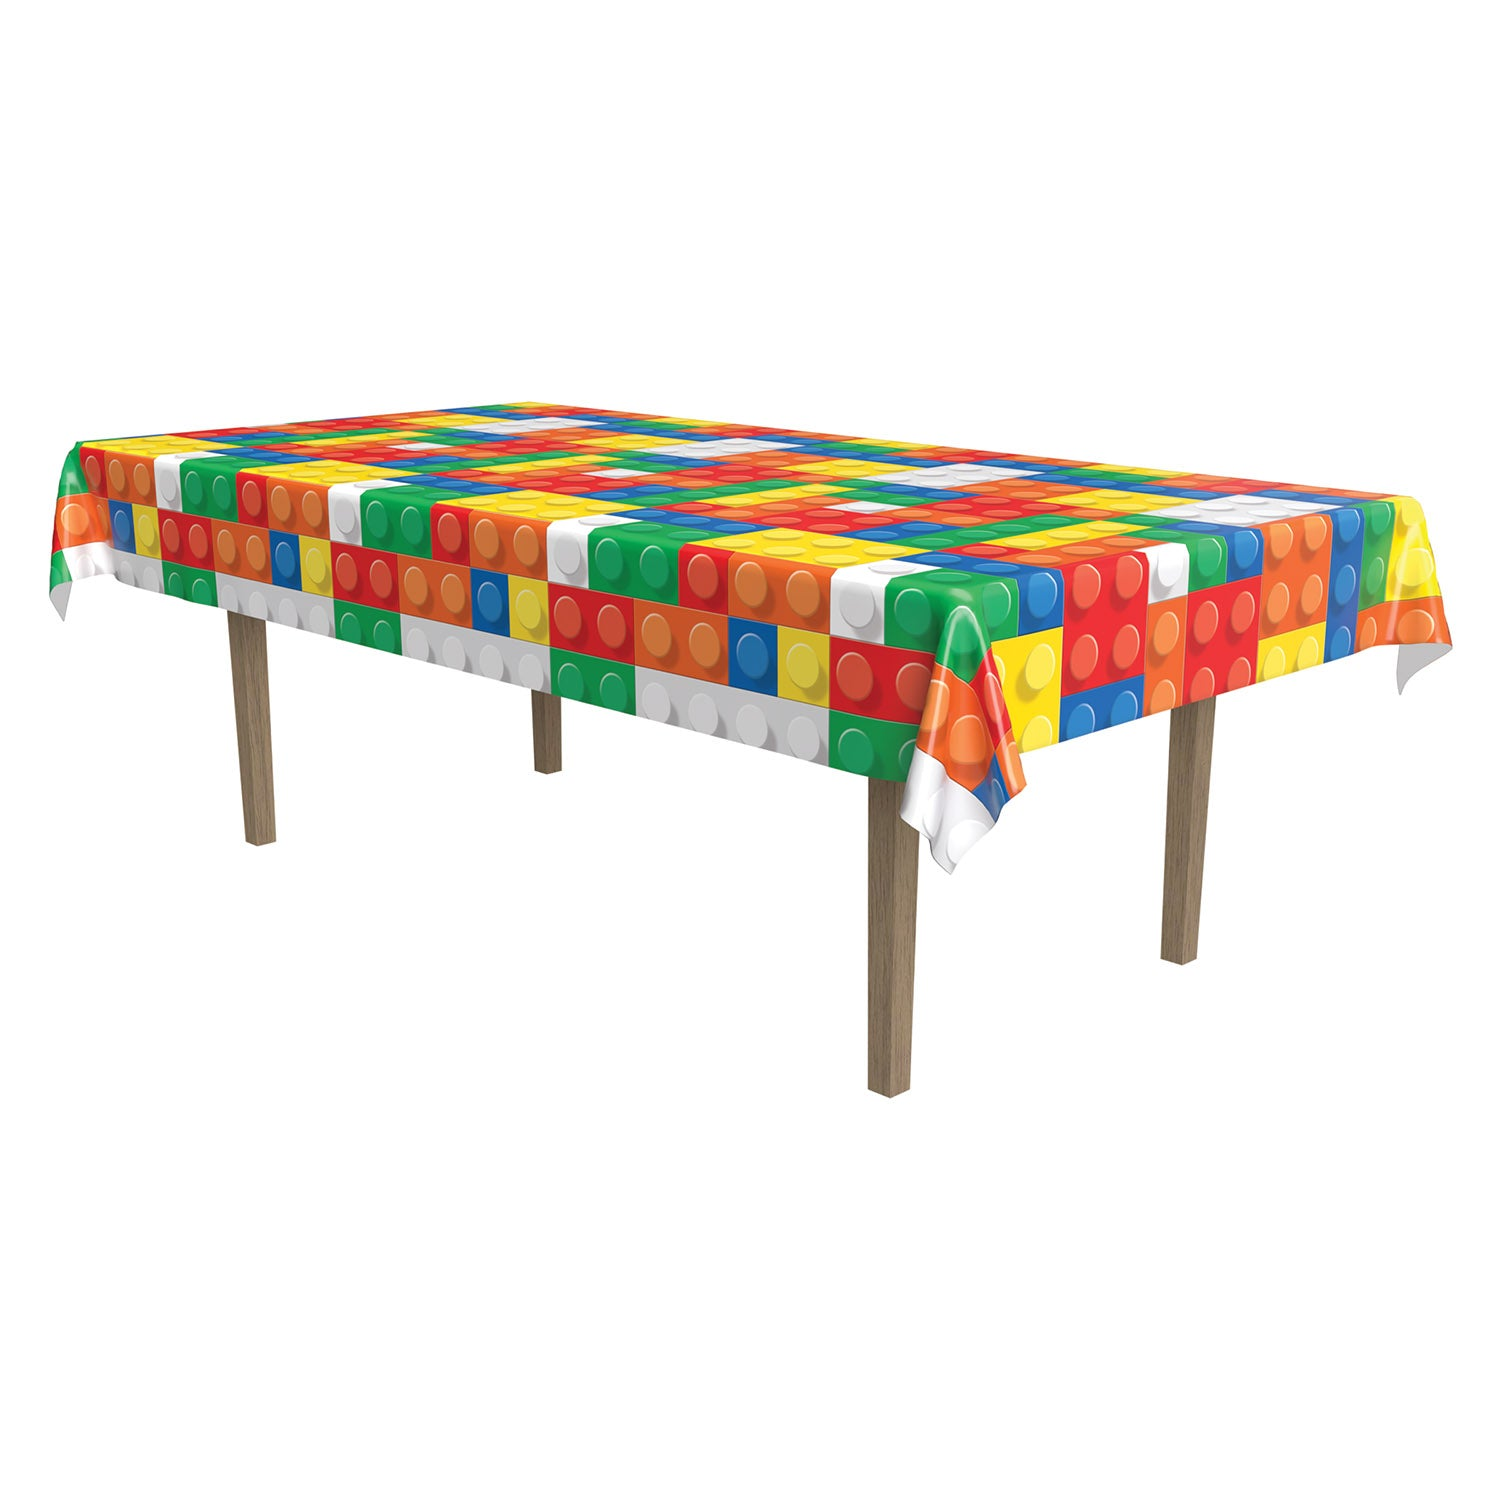 Building Blocks Tablecover by Beistle - Building Blocks Theme Decorations